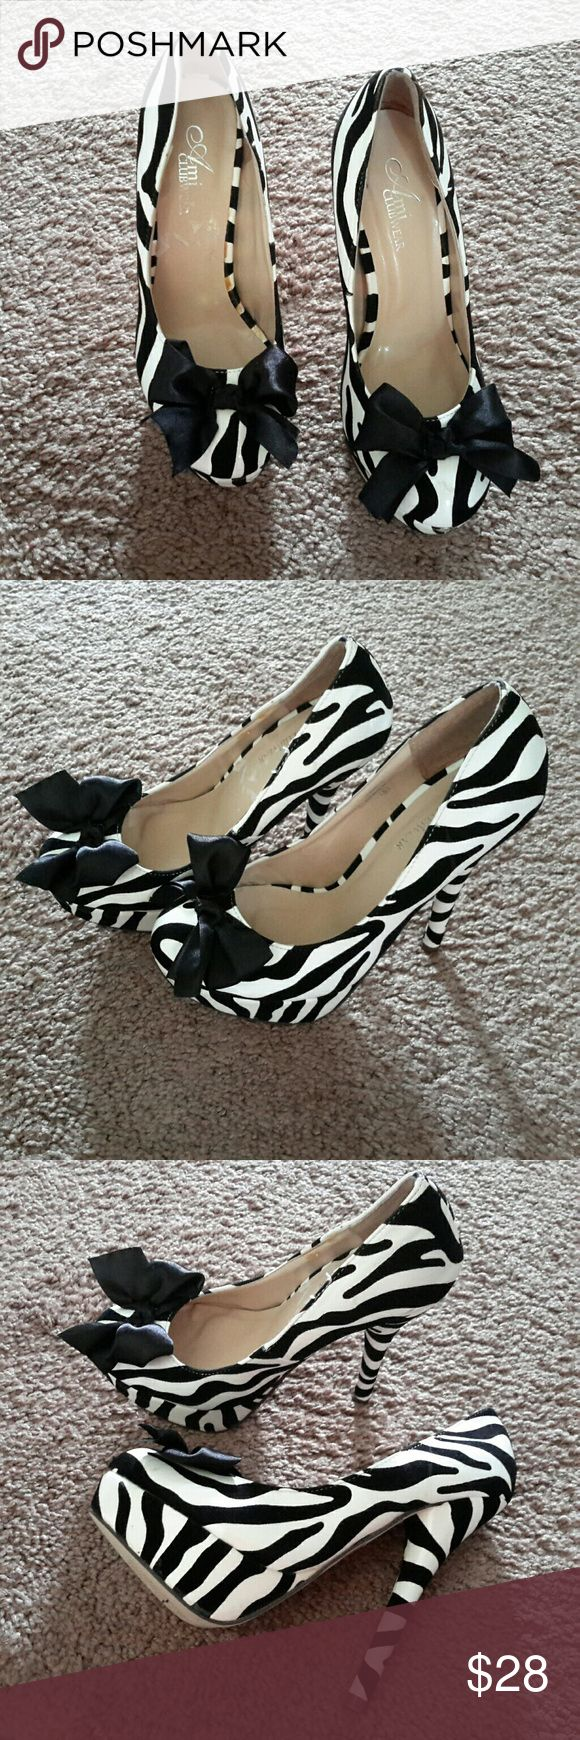 "AMI Clubwear Zebra Heels Stunning animal print heels with black bow 5 1/2"" Heel  Size 6,  2 1/2"" Wide Closed toe with cushioned footbed Barely worn AMI CLUBWEAR  Shoes Heels"